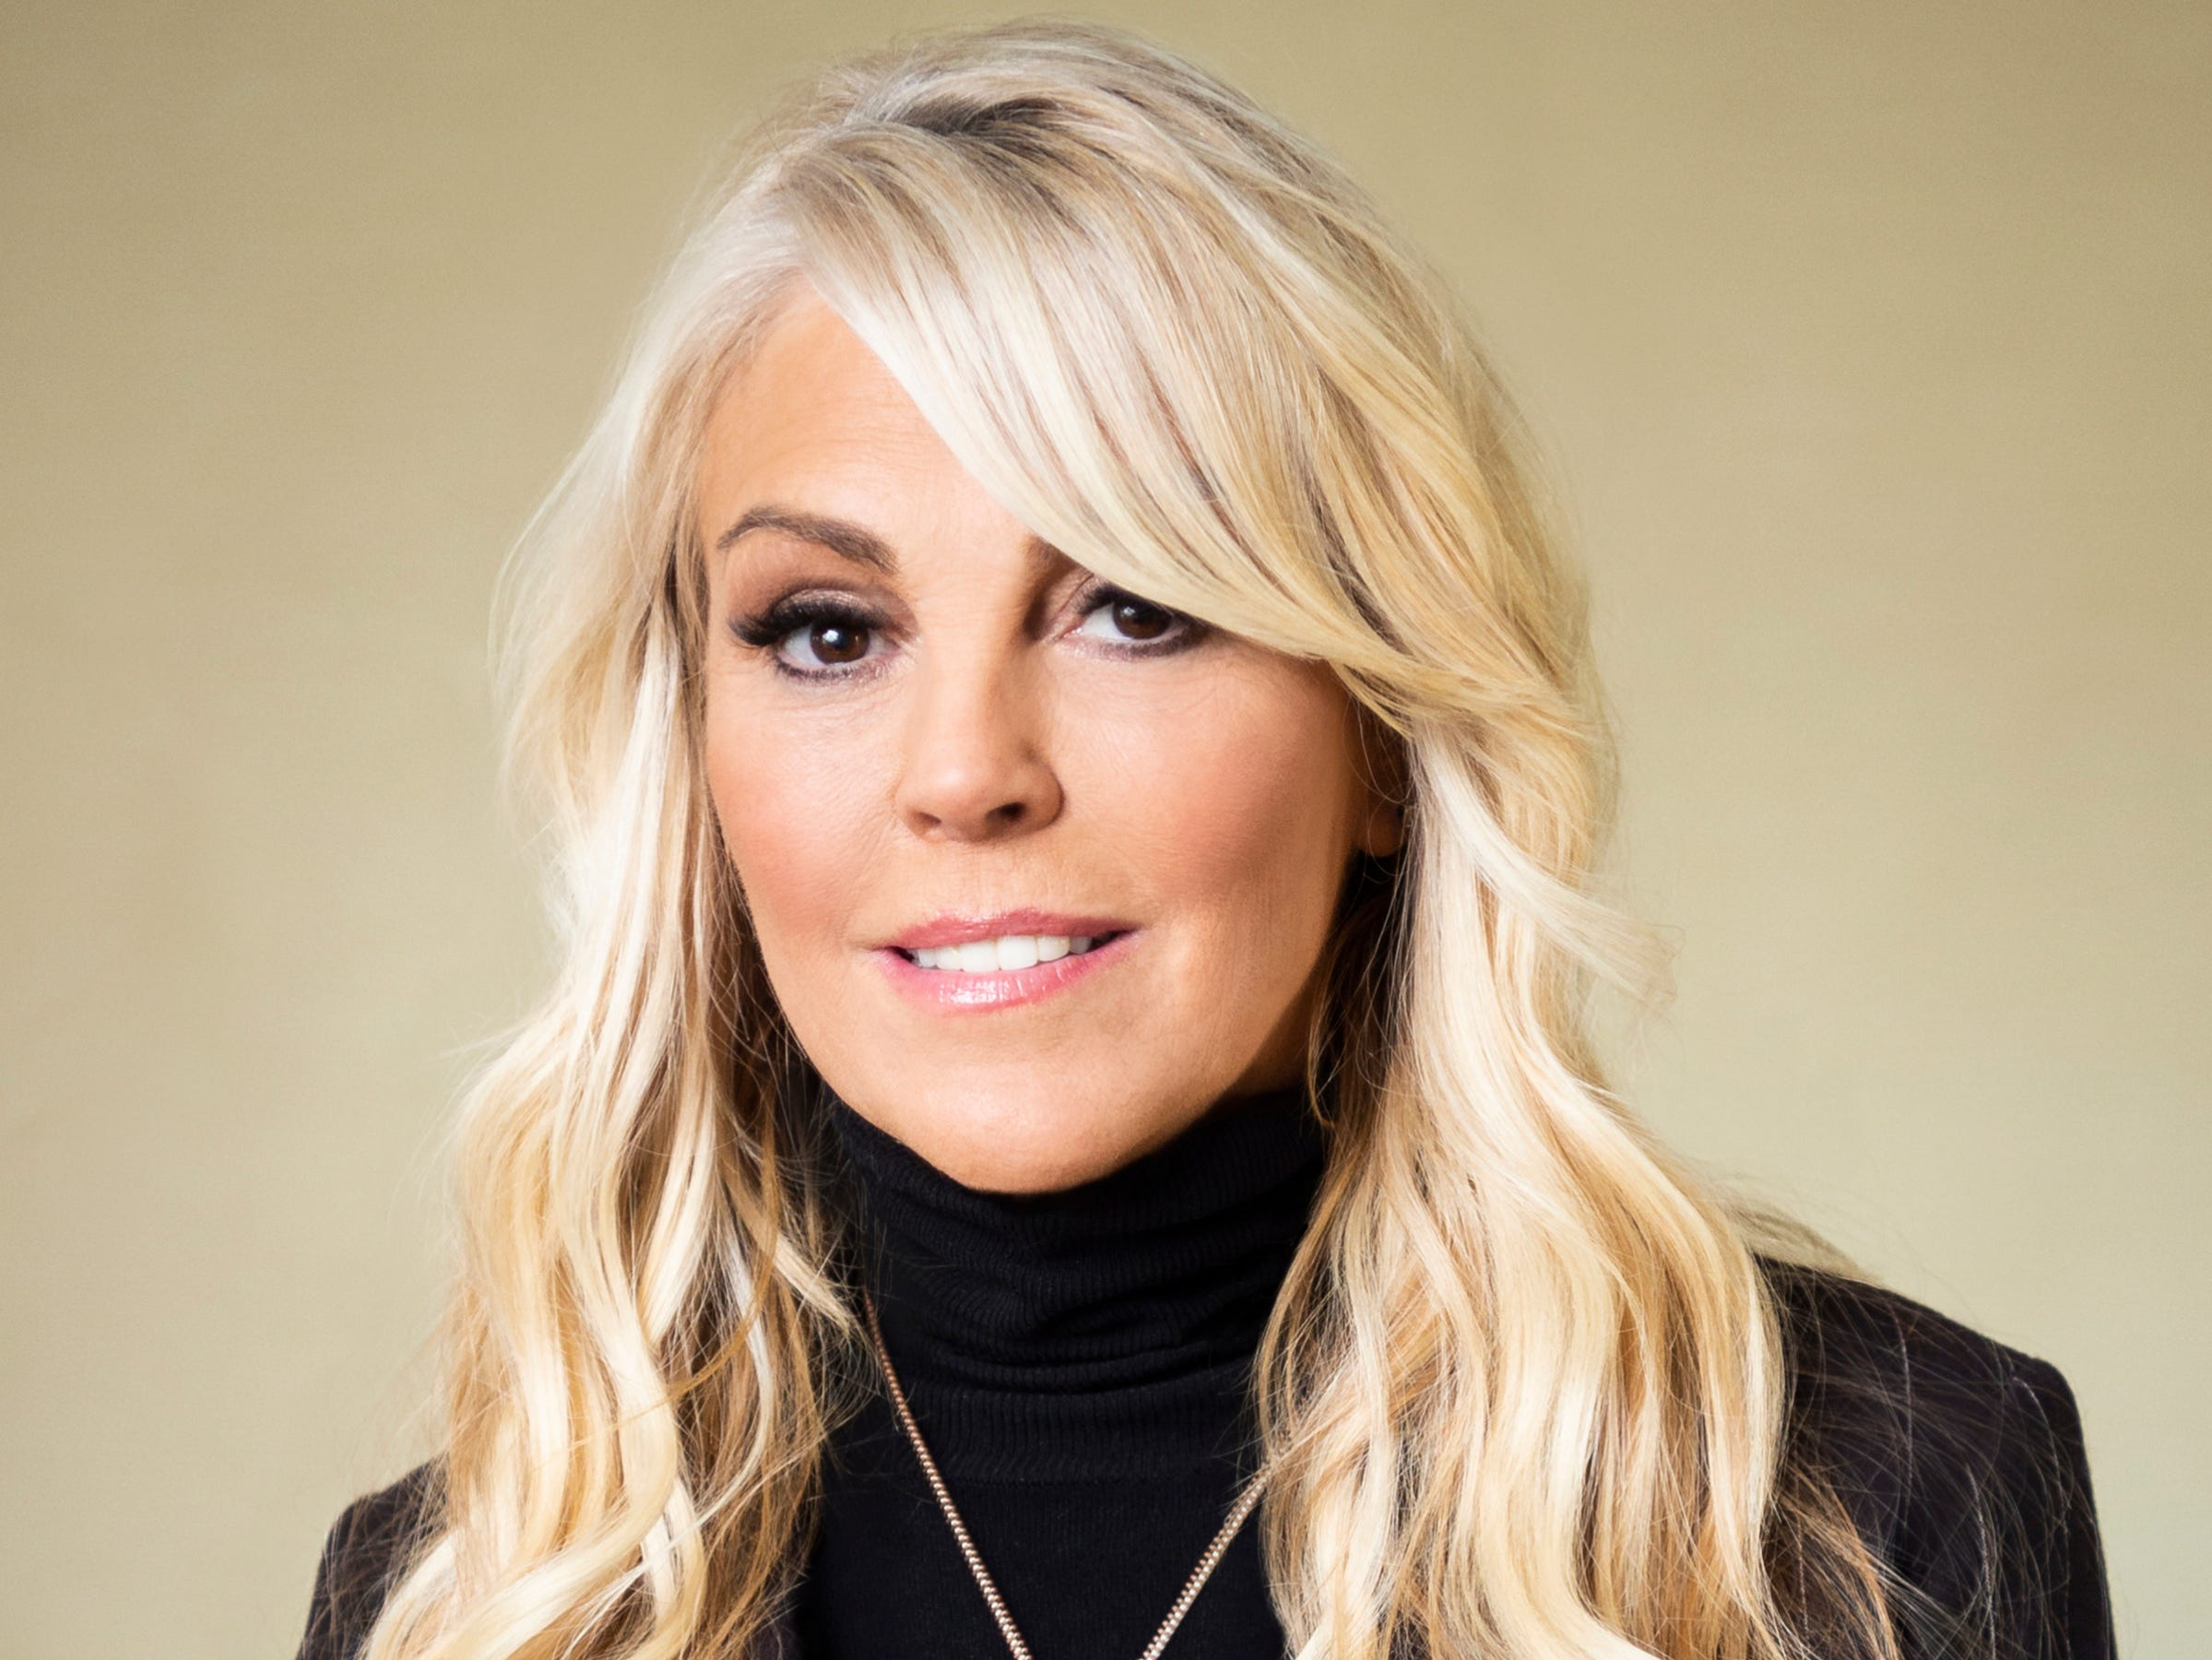 Dina Lohan to participate in the second season of BIG BROTHER: CELEBRITY EDITION. BIG BROTHER: CELEBRITY EDITION launches with a two-night premiere event Monday, Jan. 21 (8:00-9:00 PM, ET/PT) and Tuesday, Jan. 22 (8:00-9:00 PM, ET/PT) on the CBS Television Network.  Photo: Mary Kouw/CBS ©2019 CBS Broadcasting, Inc. All Rights Reserved